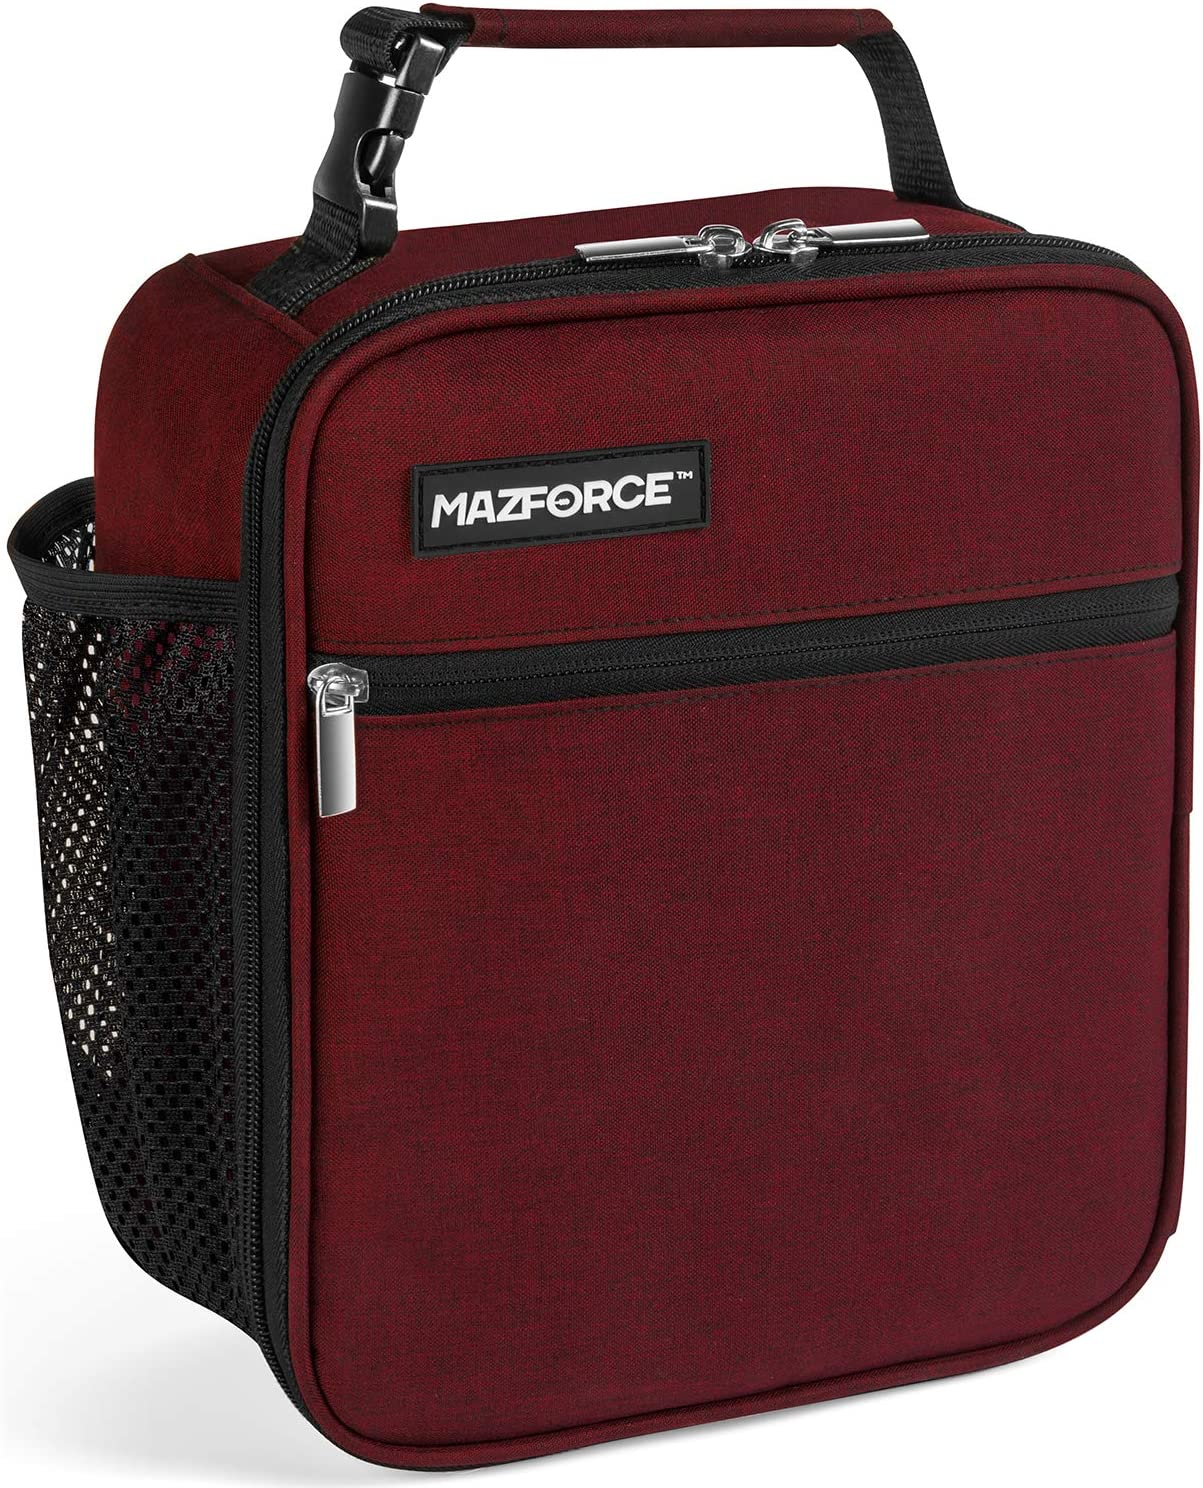 MAZFORCE Original Lunch Box Insulated Lunch Bag - Tough & Spacious Adult Lunchbox to Seize Your Day (Burgundy Red - Lunch Bags Designed in California for Men, Adults, Women)